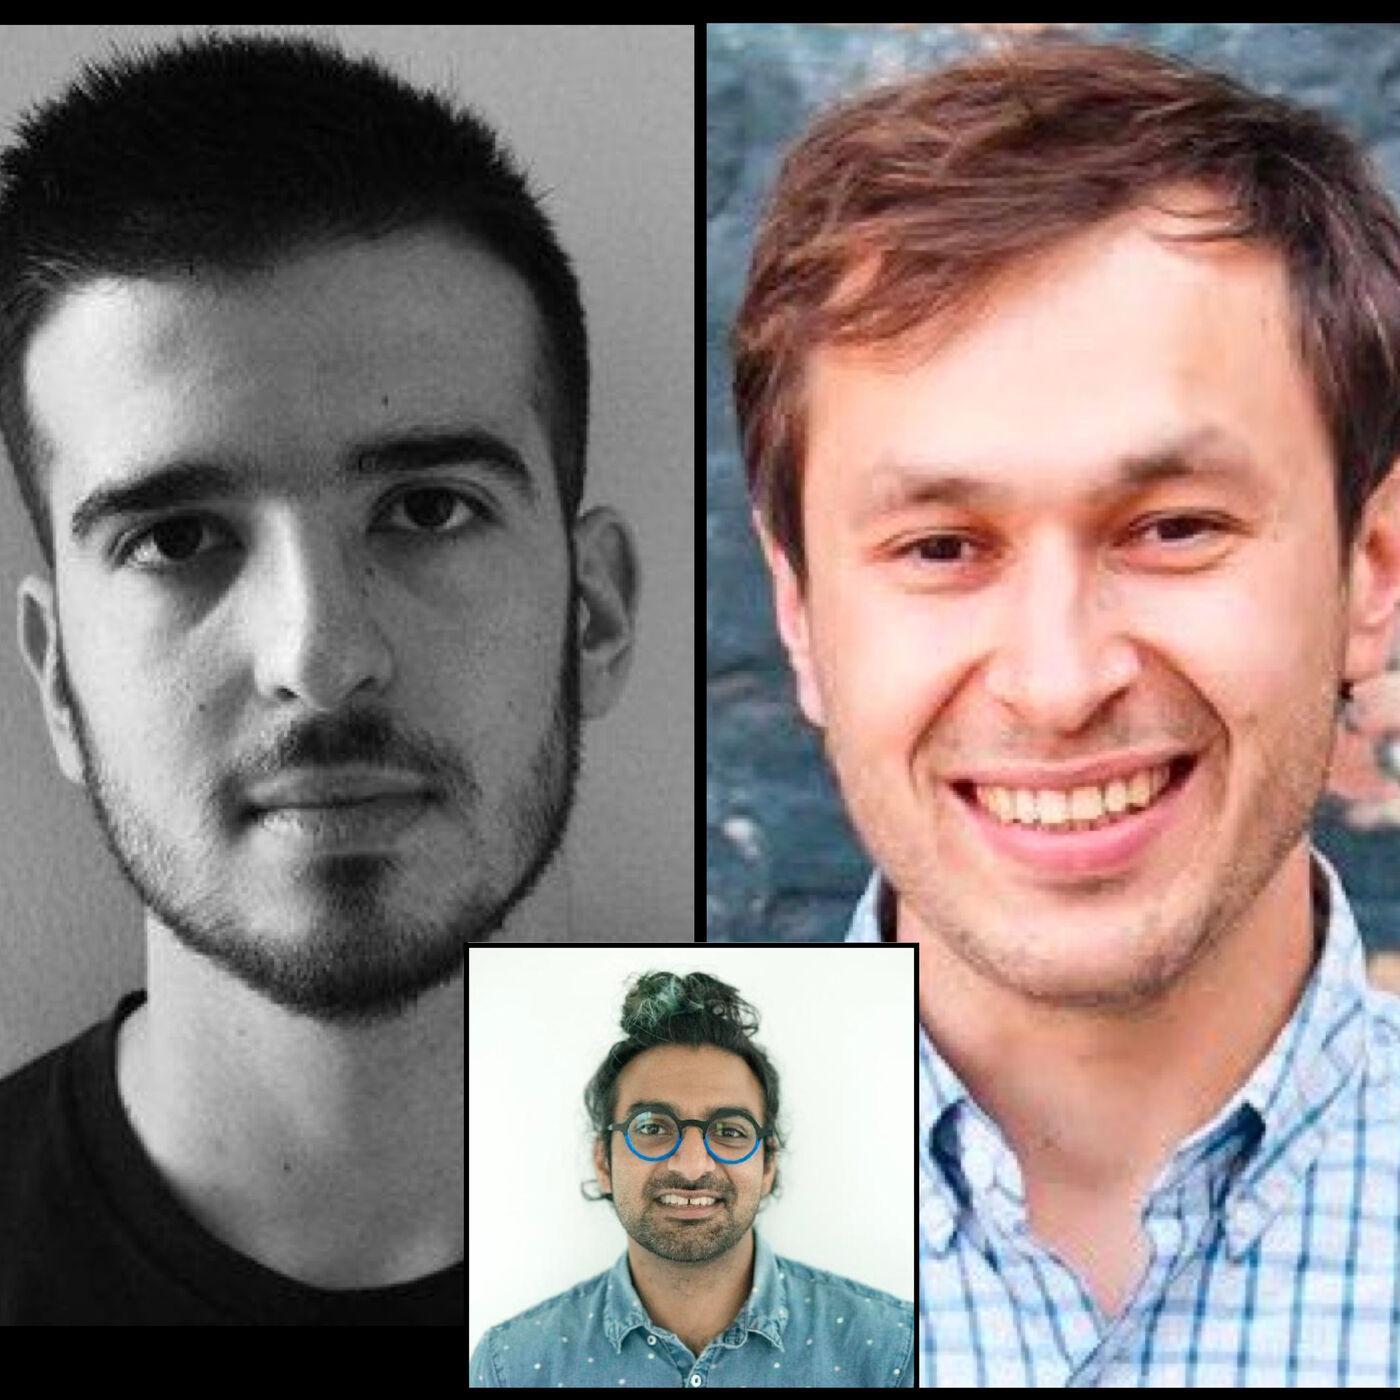 Motion: Scalability is impossible without sharding and layer-2 solutions (Georgios Konstantopoulos vs. Anatoly Yakovenko, cohost: Tarun Chitra)